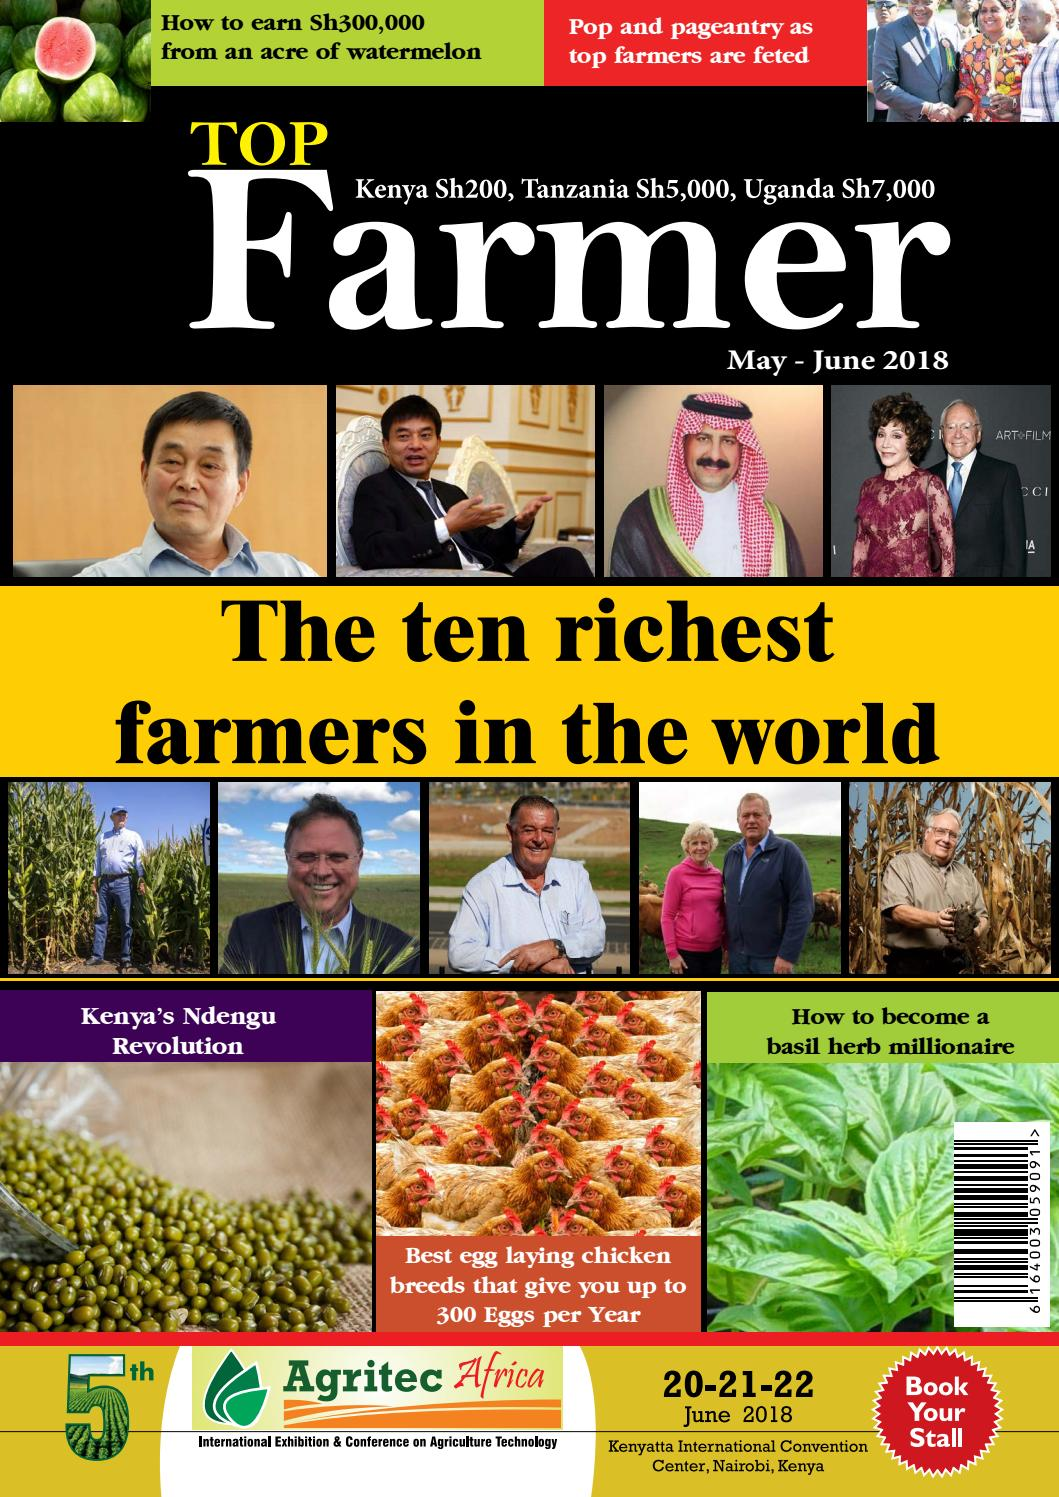 Top Farmer magazine, May-June 2018 by Top Farmer Magazine